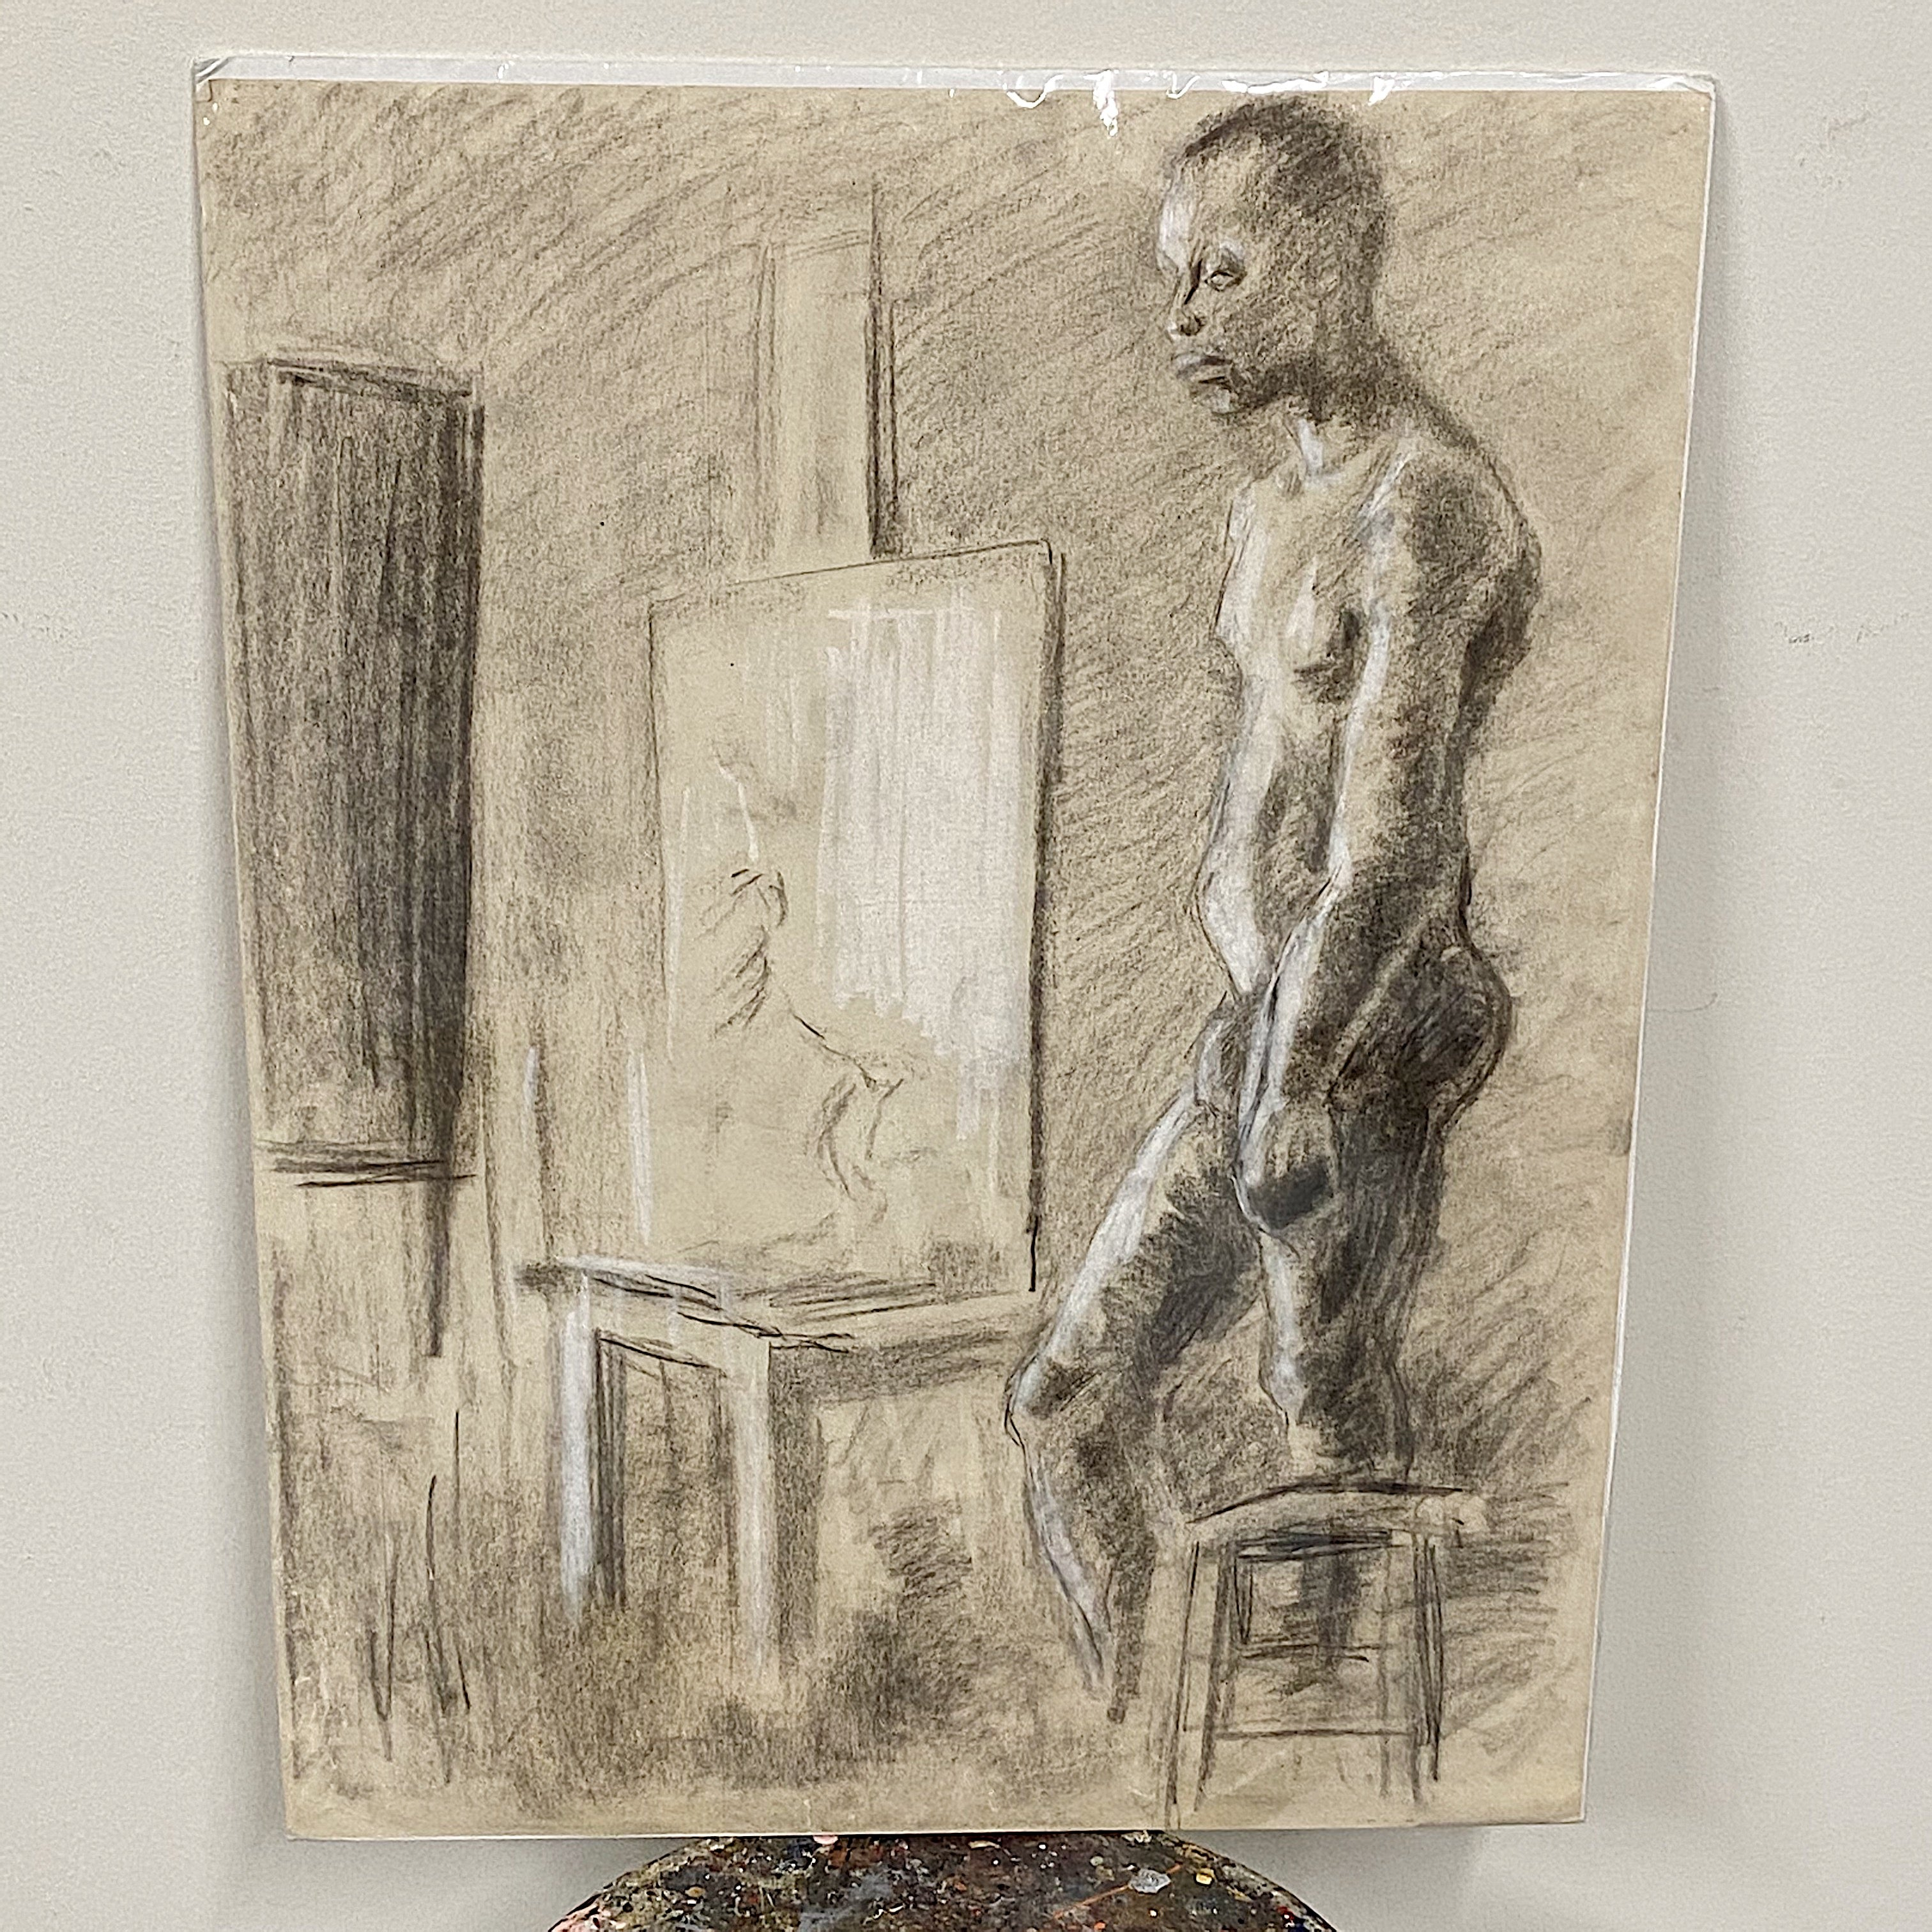 "African American Charcoal Drawing from 1970s - Man Standing in Retrospection - 24"" x 18"" - Rare Vintage Wall Art - Powerful Artistic Vision Full View"